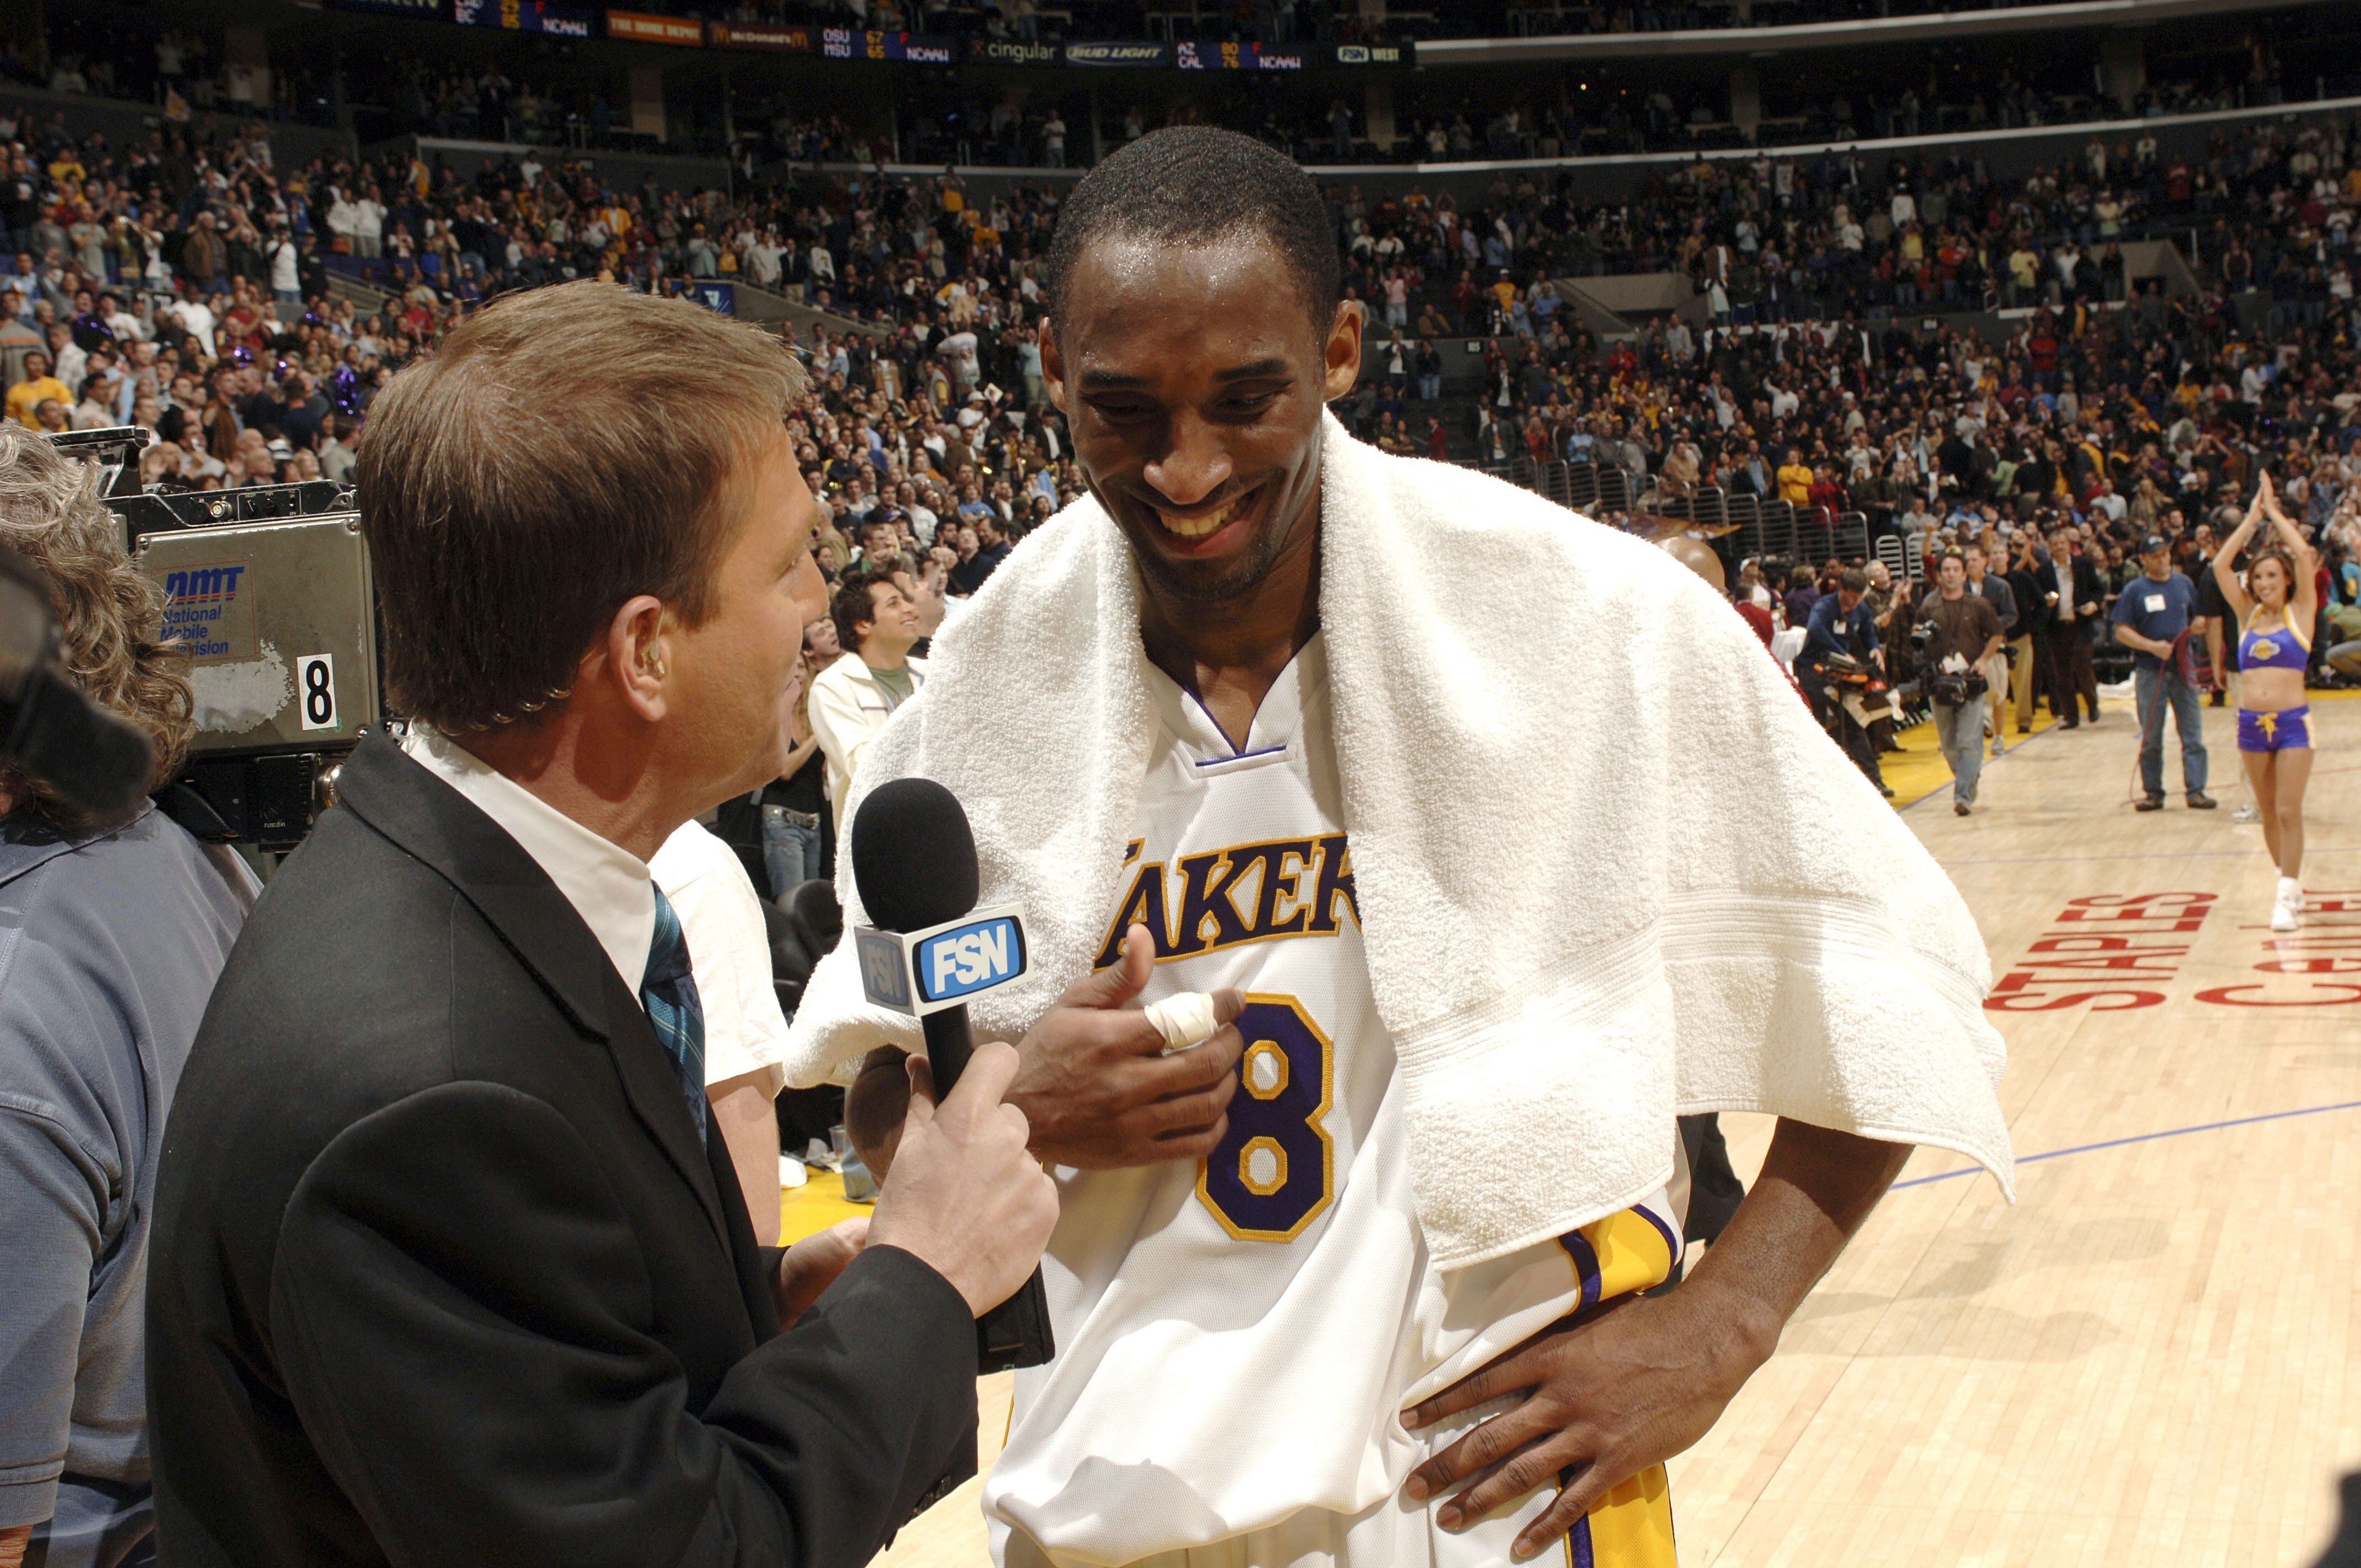 Kobe Bryant gets a loud ovation from his home crowdafter scoring81 points against the Toronto Raptors on Jan.&nbs